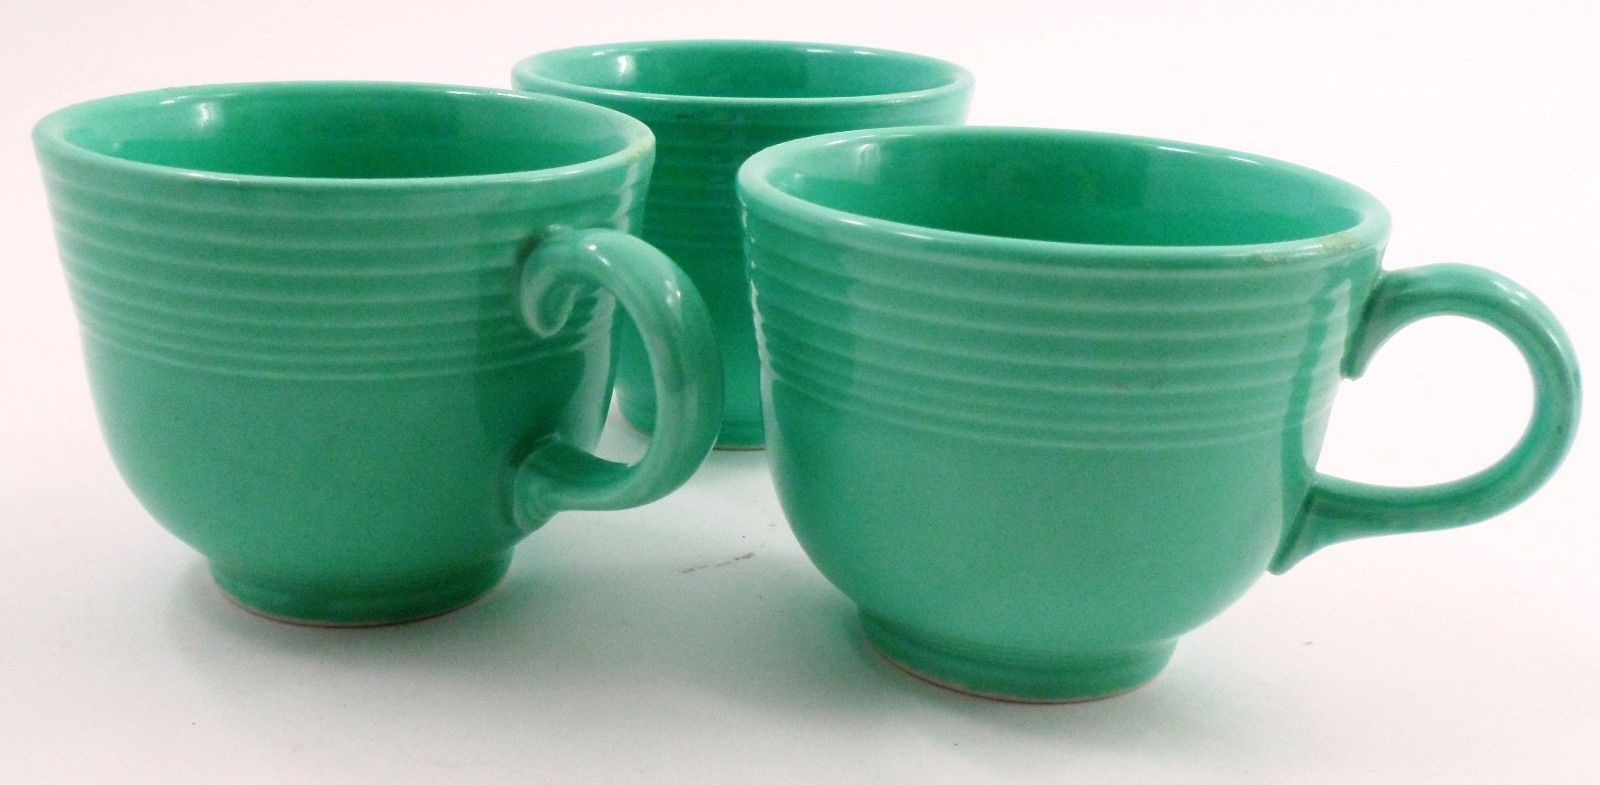 3 Clean EUC Homer Laughlin Fiesta Dinnerware Fiestaware Light Green Coffee Cups image 2